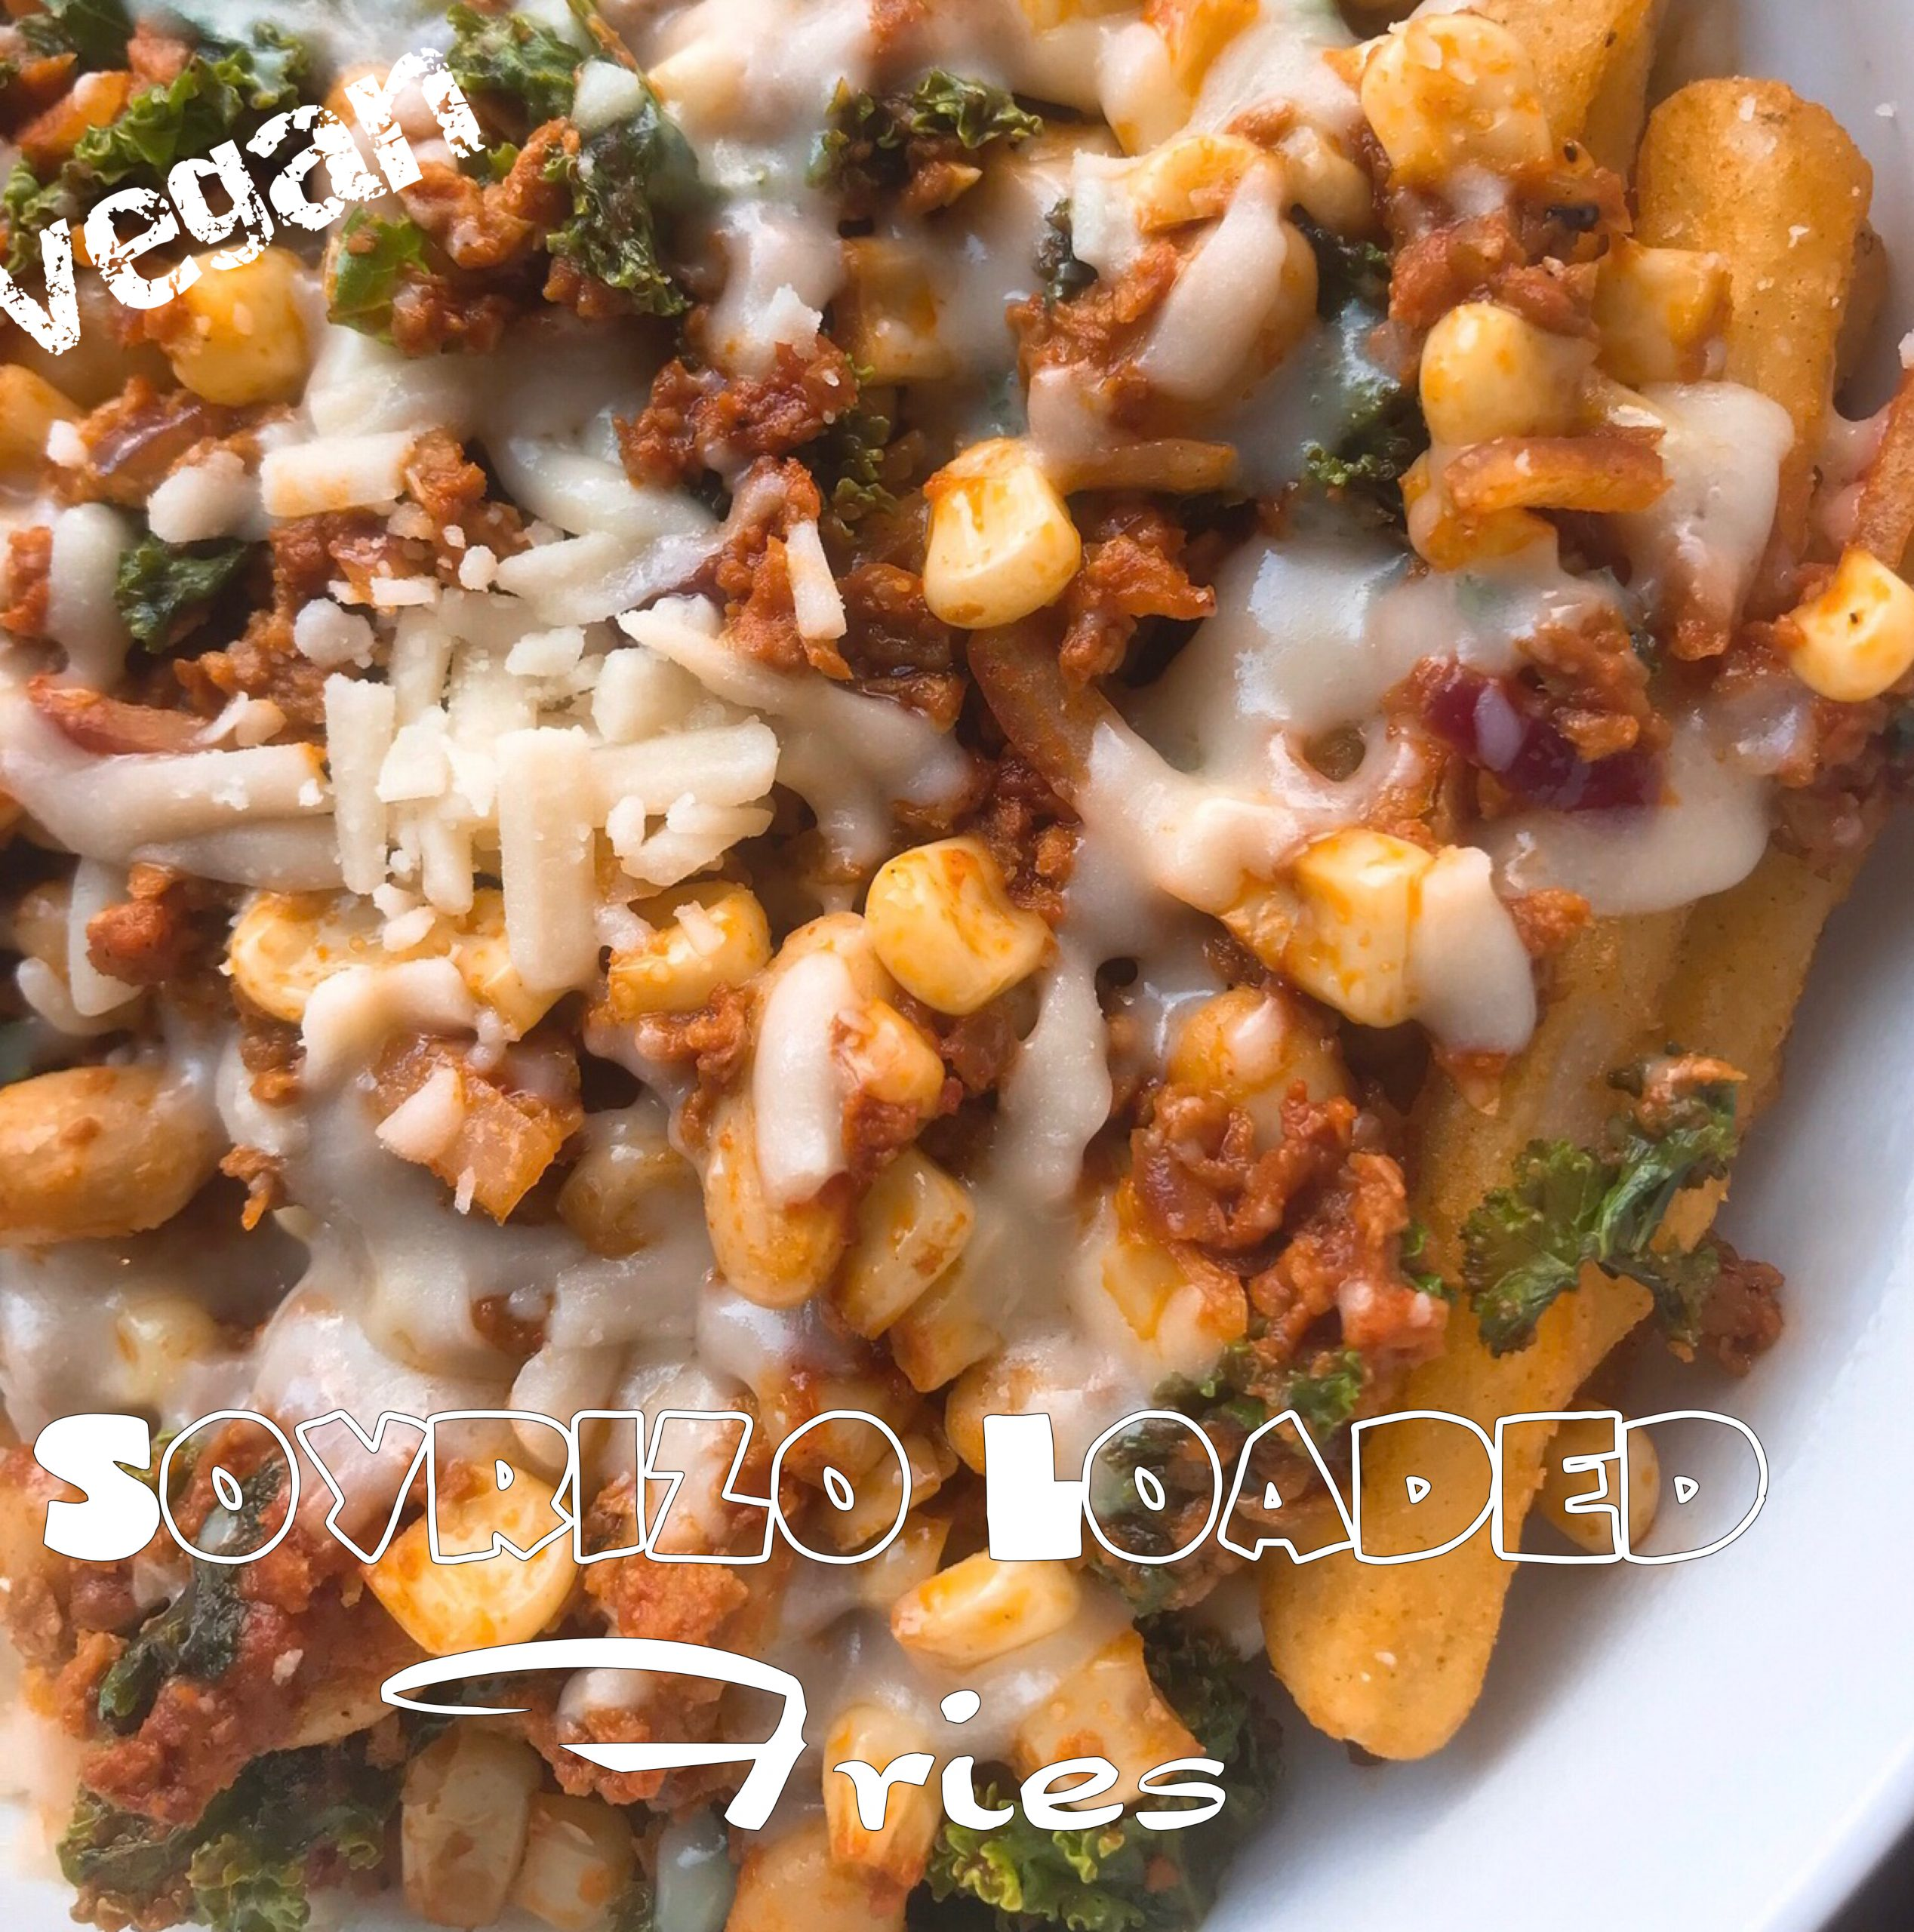 Protected: Vegan Soyrizo Loaded Fries